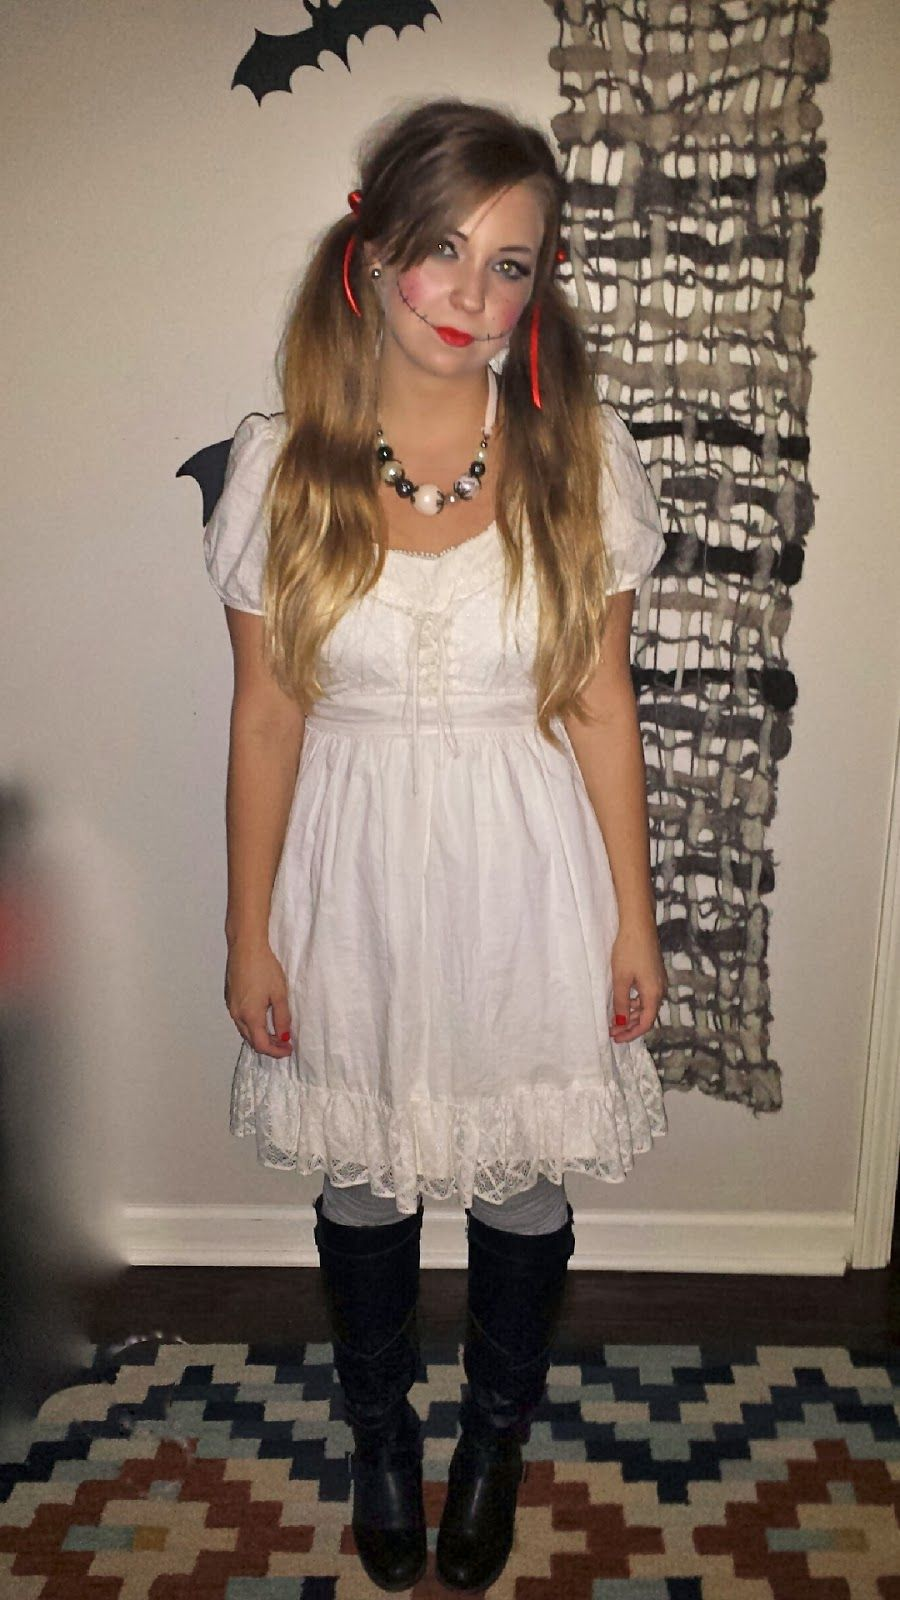 how to dress up as a scary doll for halloween google search - How To Make A Doll Costume For Halloween